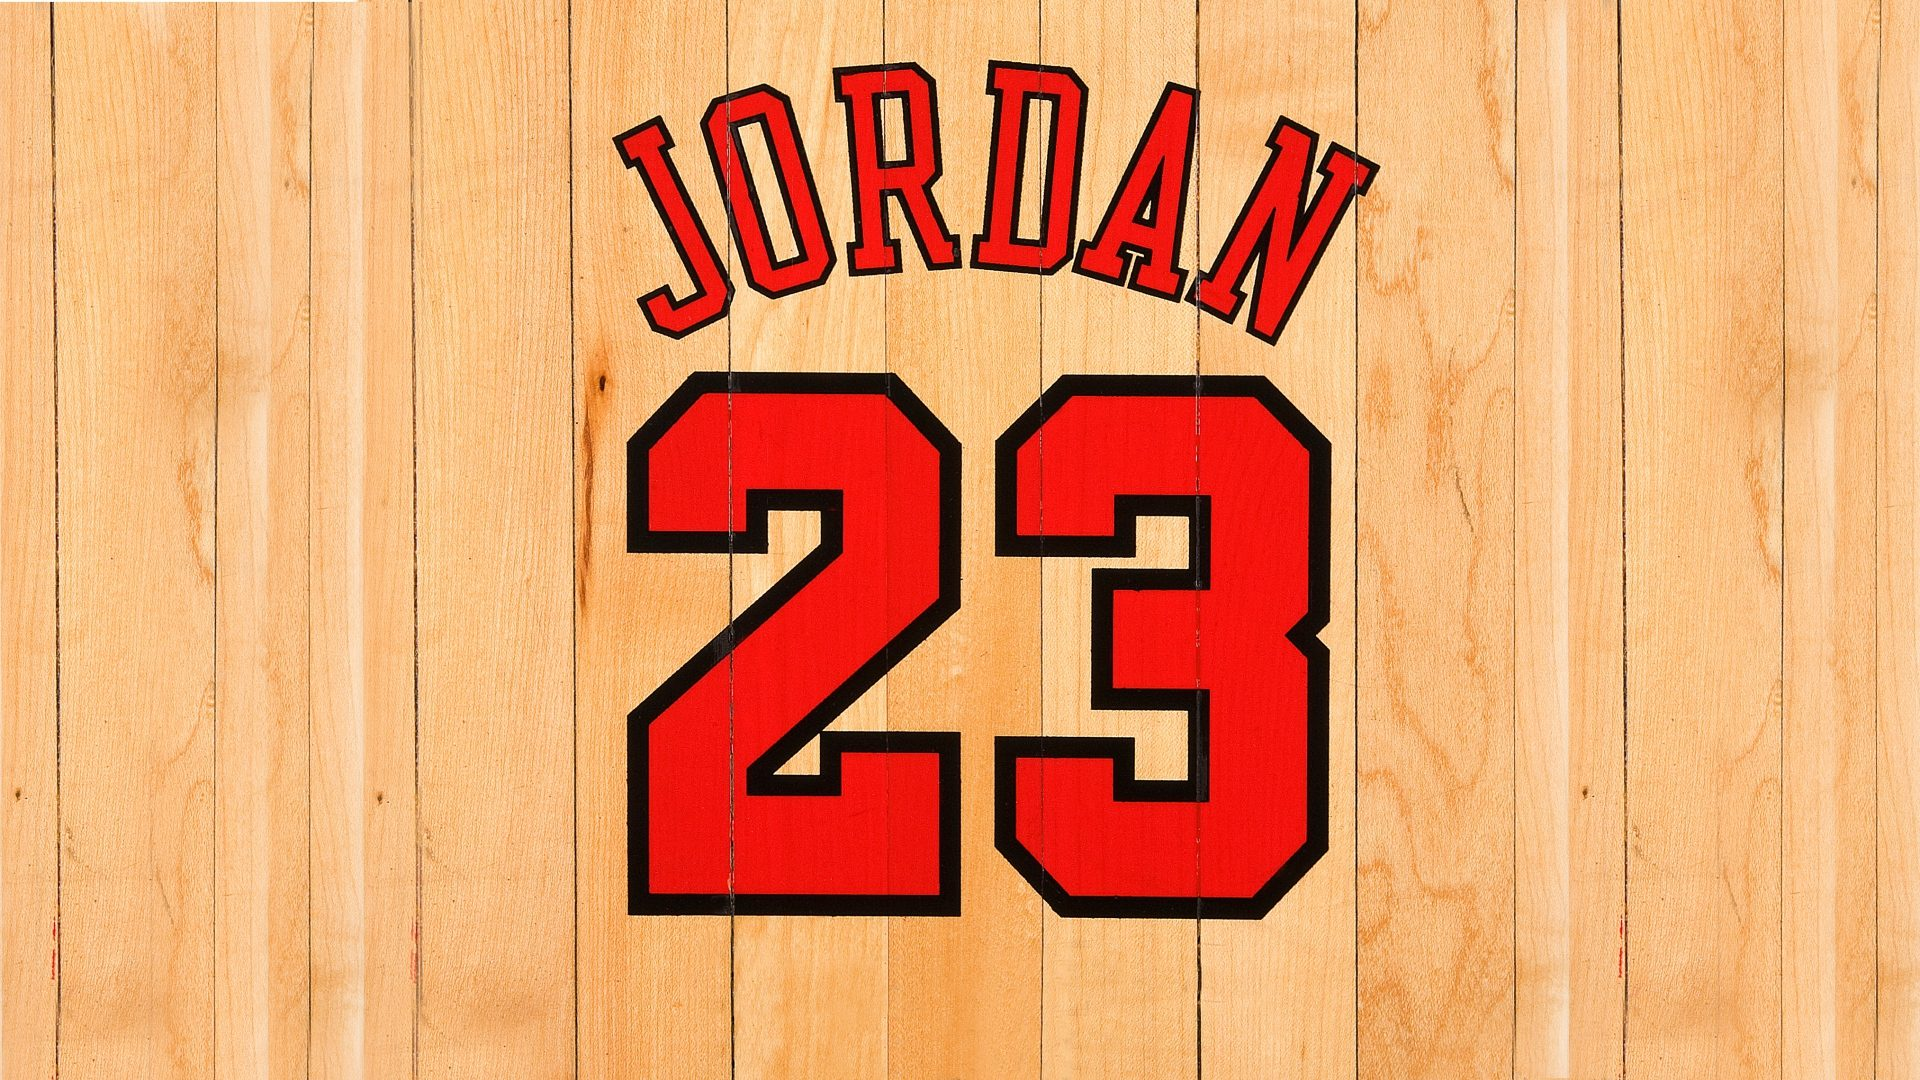 Michael Jordan Symbol Wallpaper